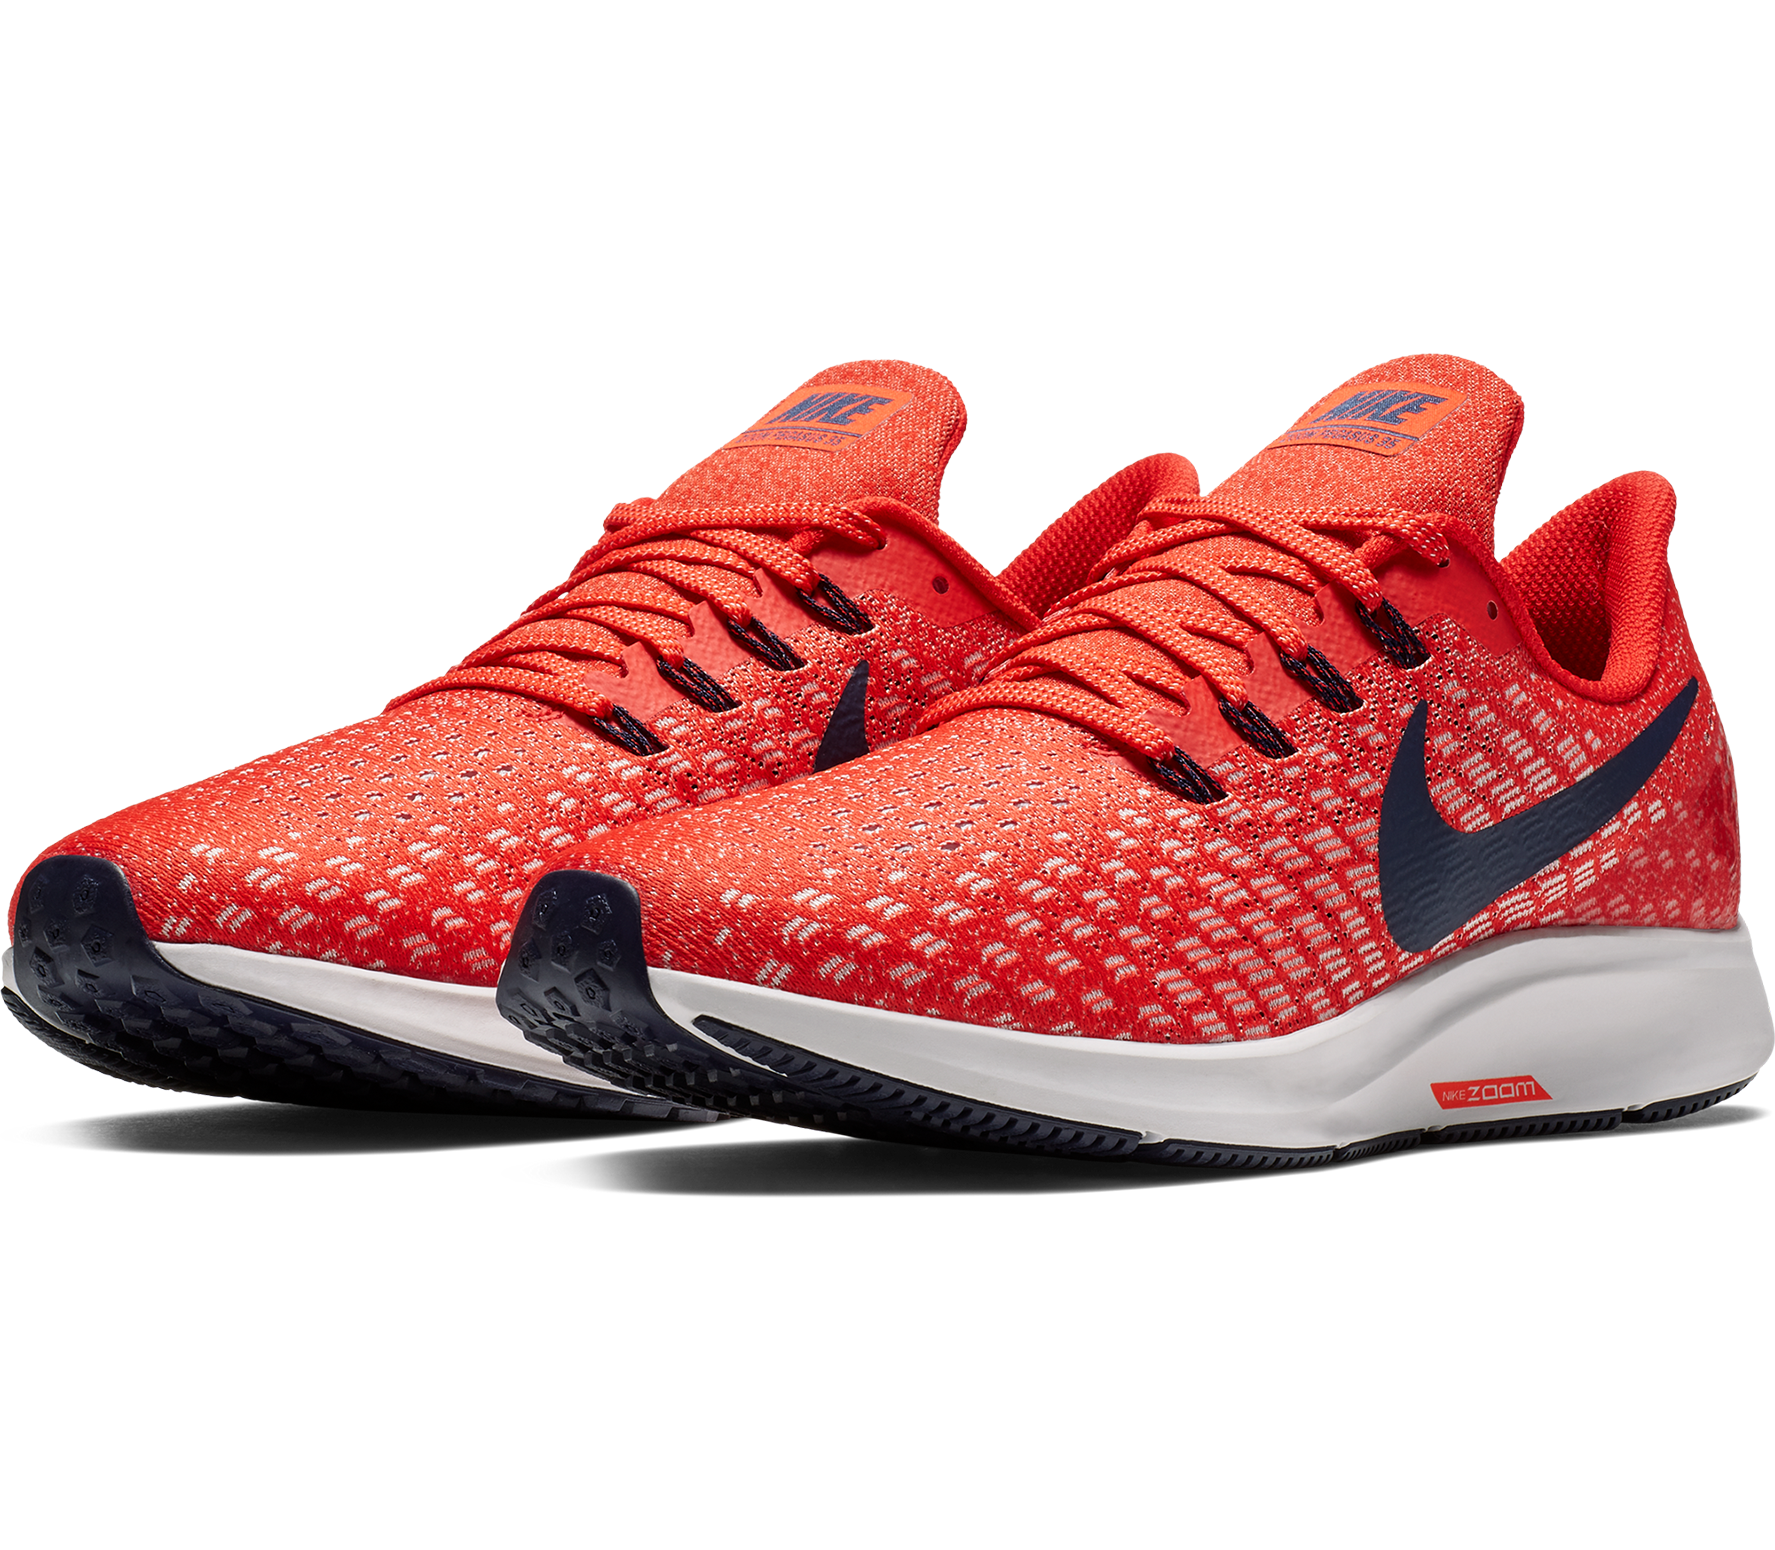 huge selection of 0a248 debfc Nike - Air Zoom Pegasus 35 Hombre Zapatos para correr (rojo)